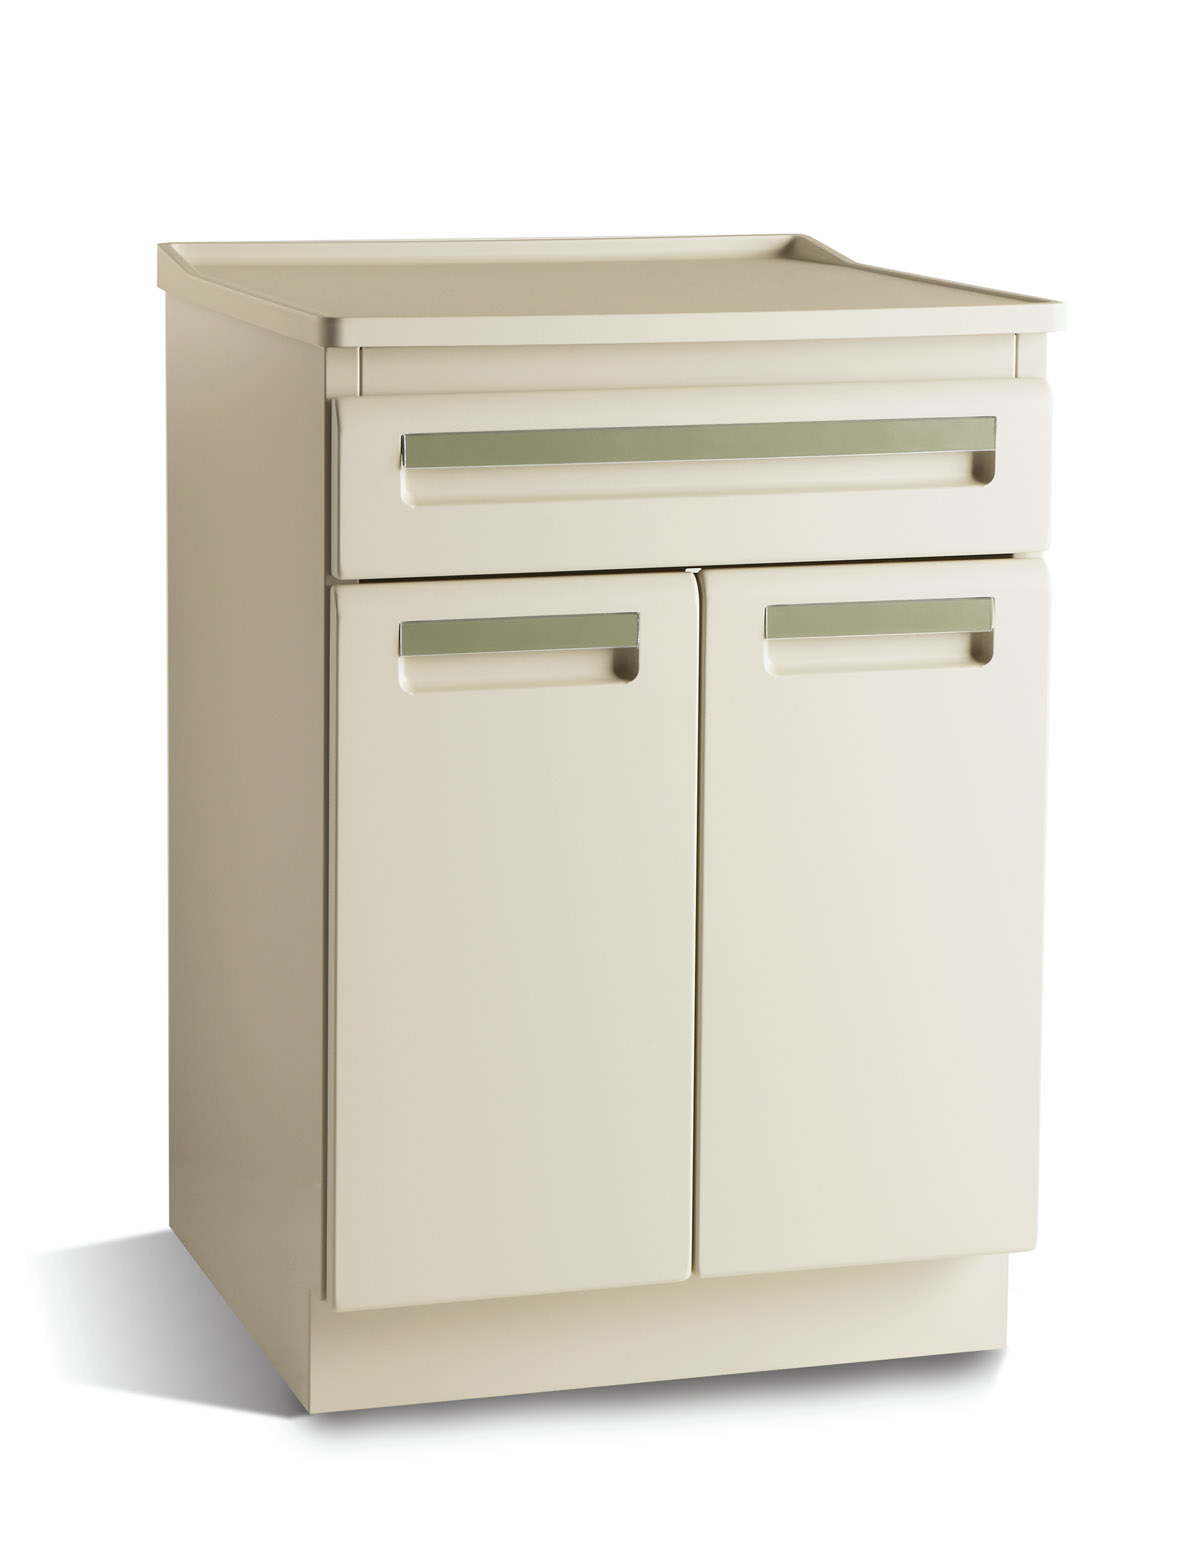 CABINET, TREATMENT, MIDMARK 6060, W/SHELF, S.SAGE/ SPRUCE